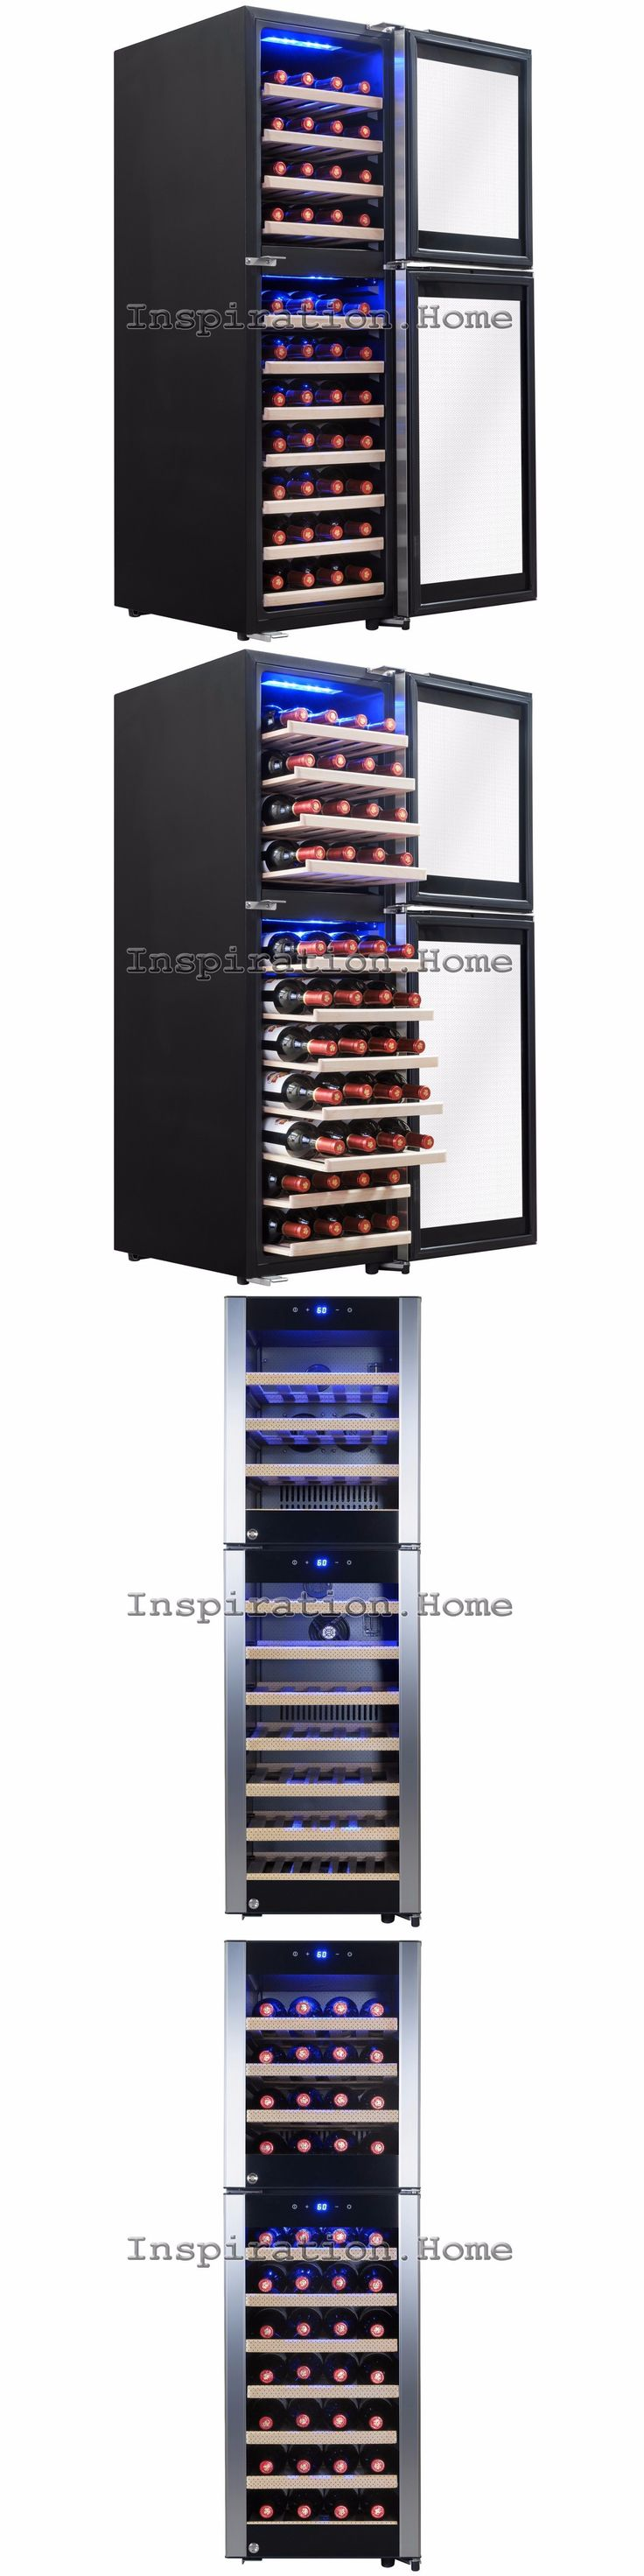 Wine Fridges and Cellars 177750: 53 Bottle Dual Zone Compressor Electric Wine Cooler Refrigerator Touch Control -> BUY IT NOW ONLY: $599.99 on eBay!